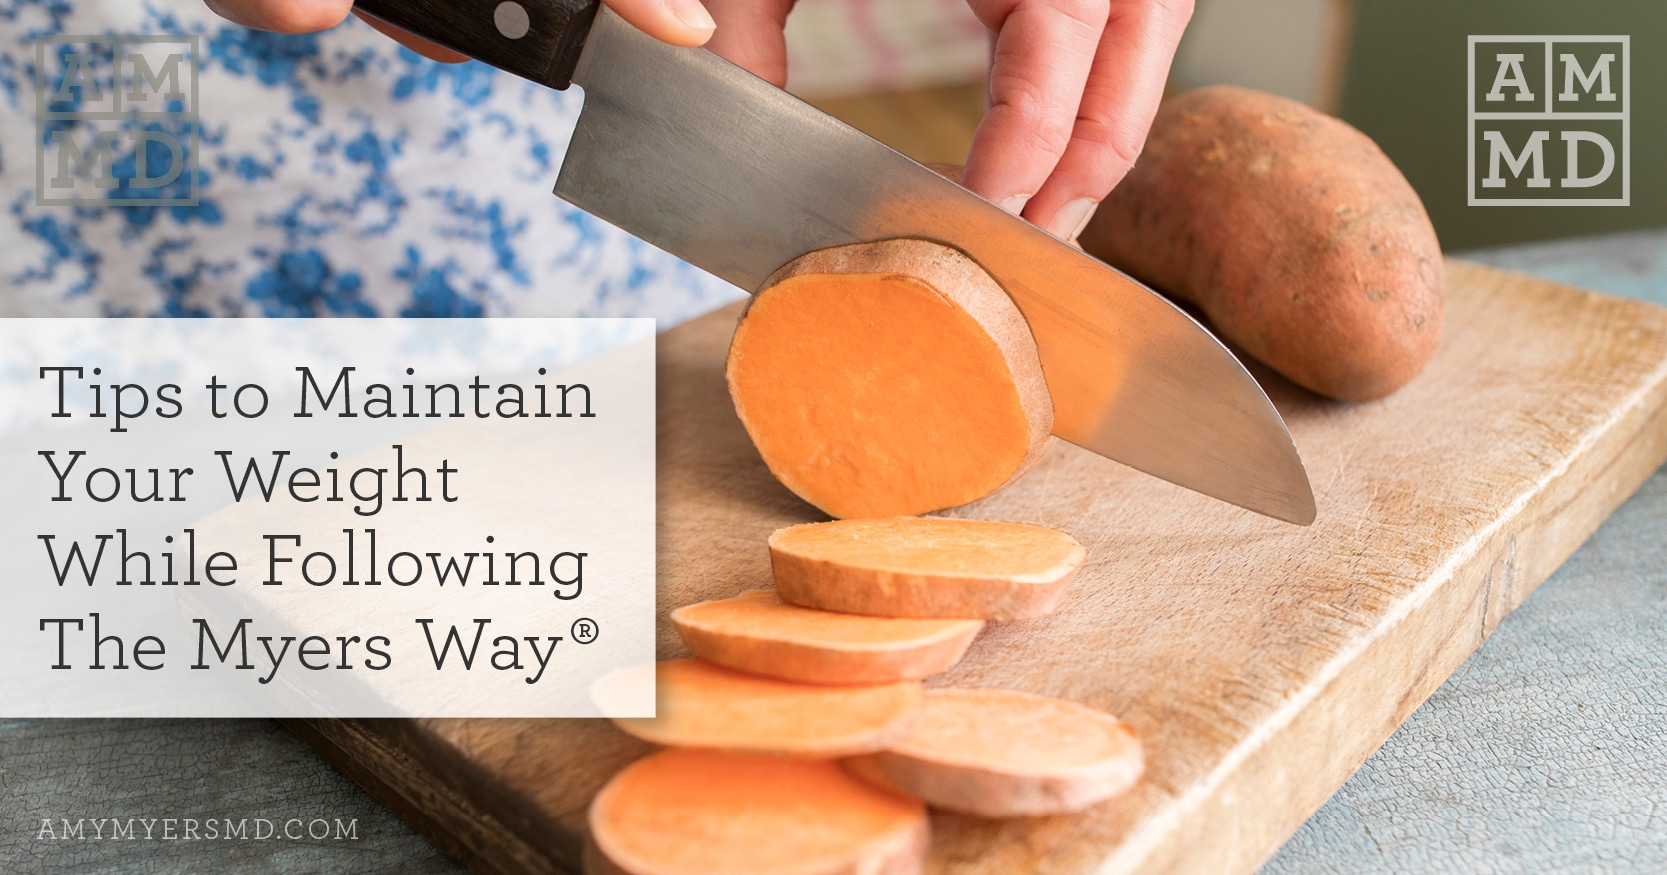 Maintain Your Weight While Following The Myers Way® - Slicing Sweet Potatoes - Featured Image - Amy Myers MD